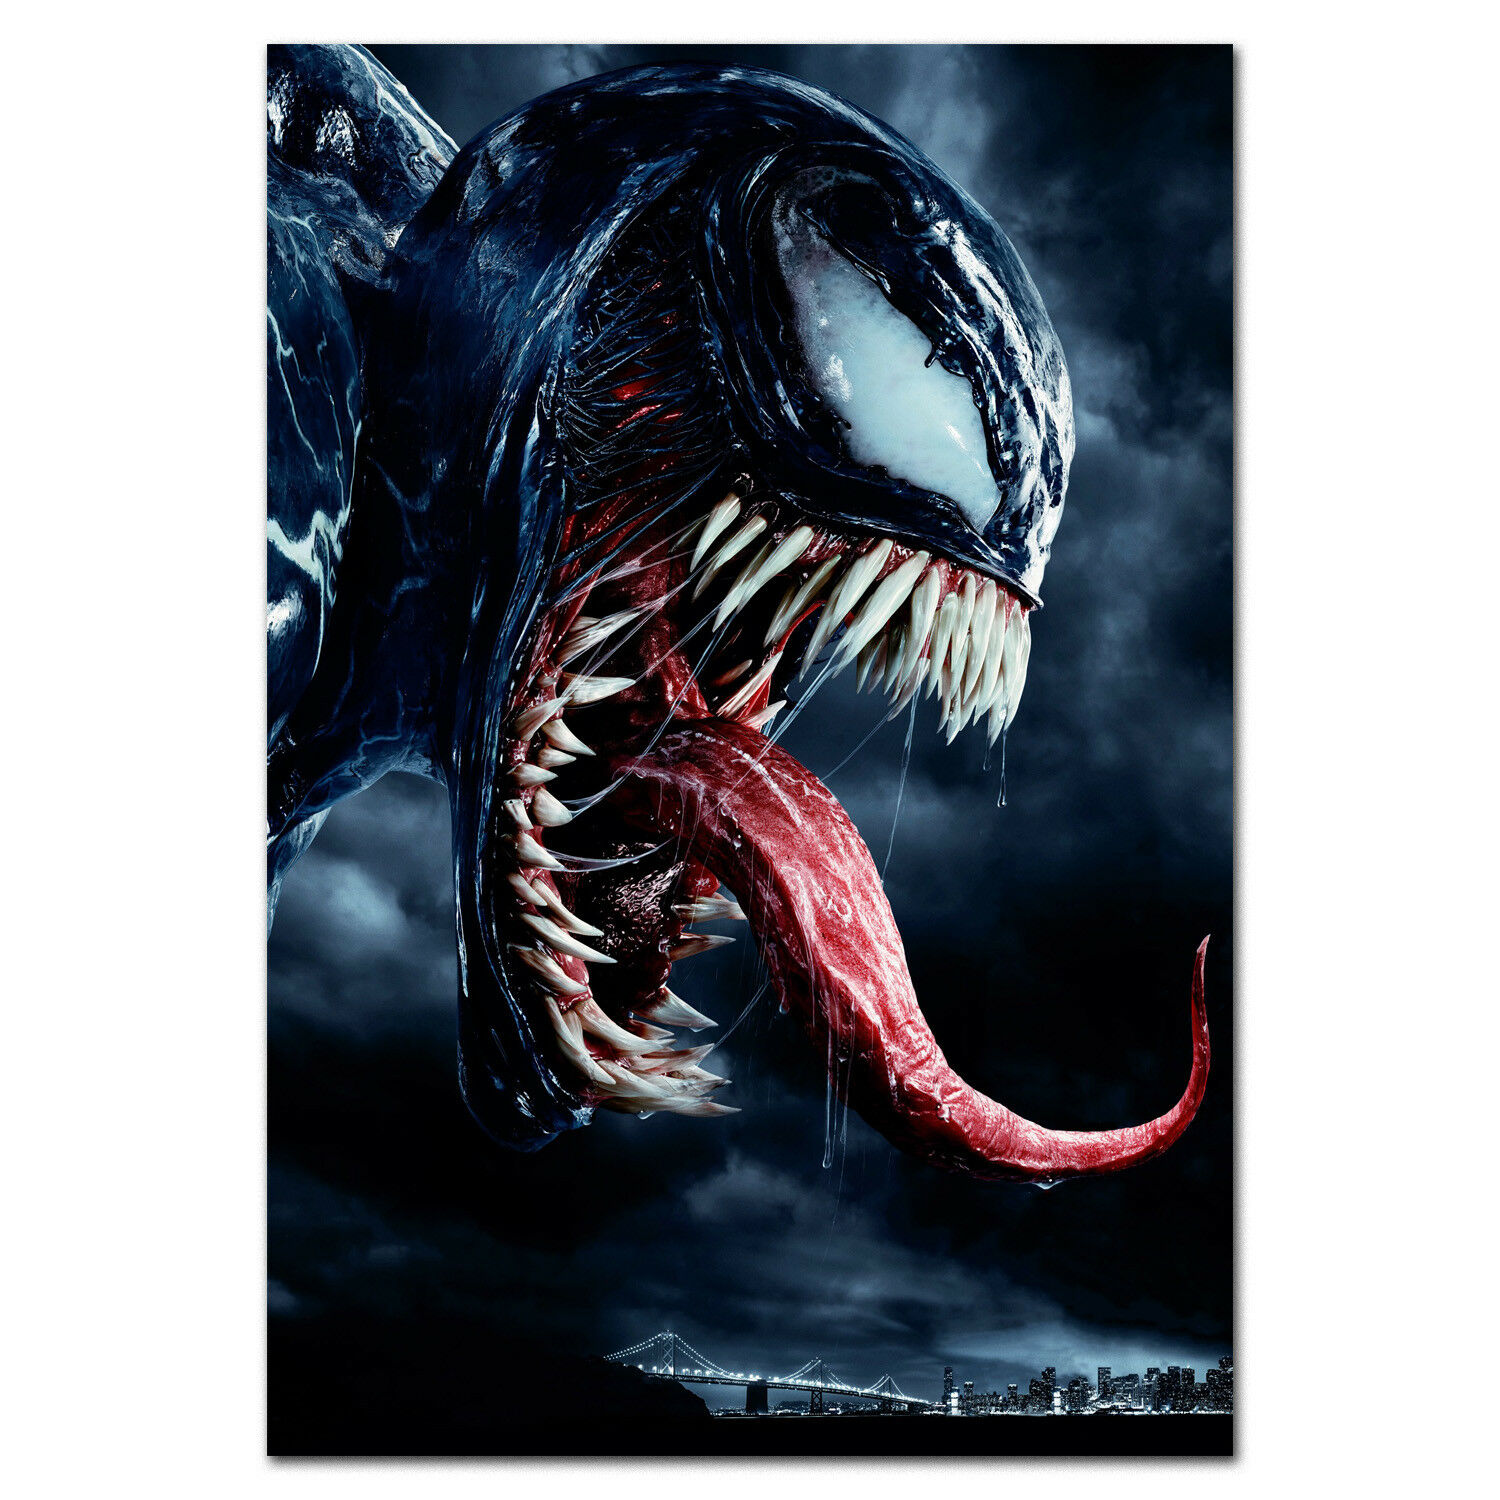 Venom Movie Poster - 2018 Movie - High Quality Prints